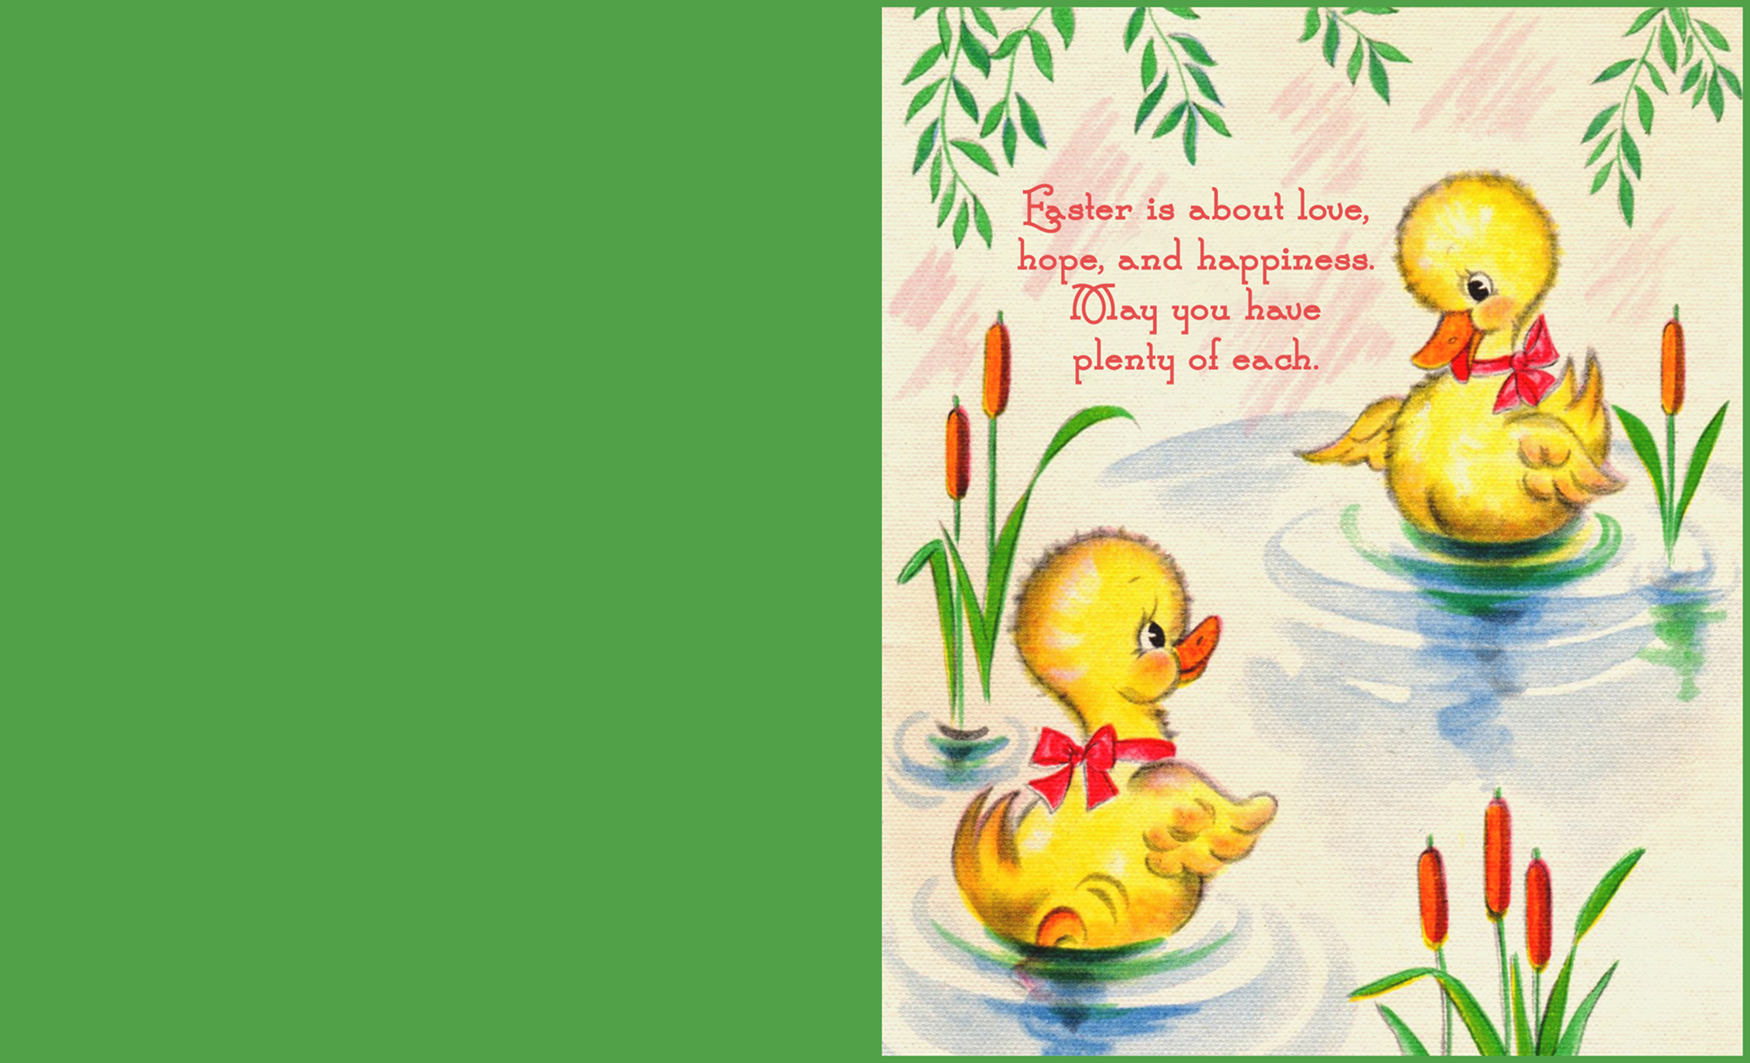 Printable Easter greeting card with two ducklings.